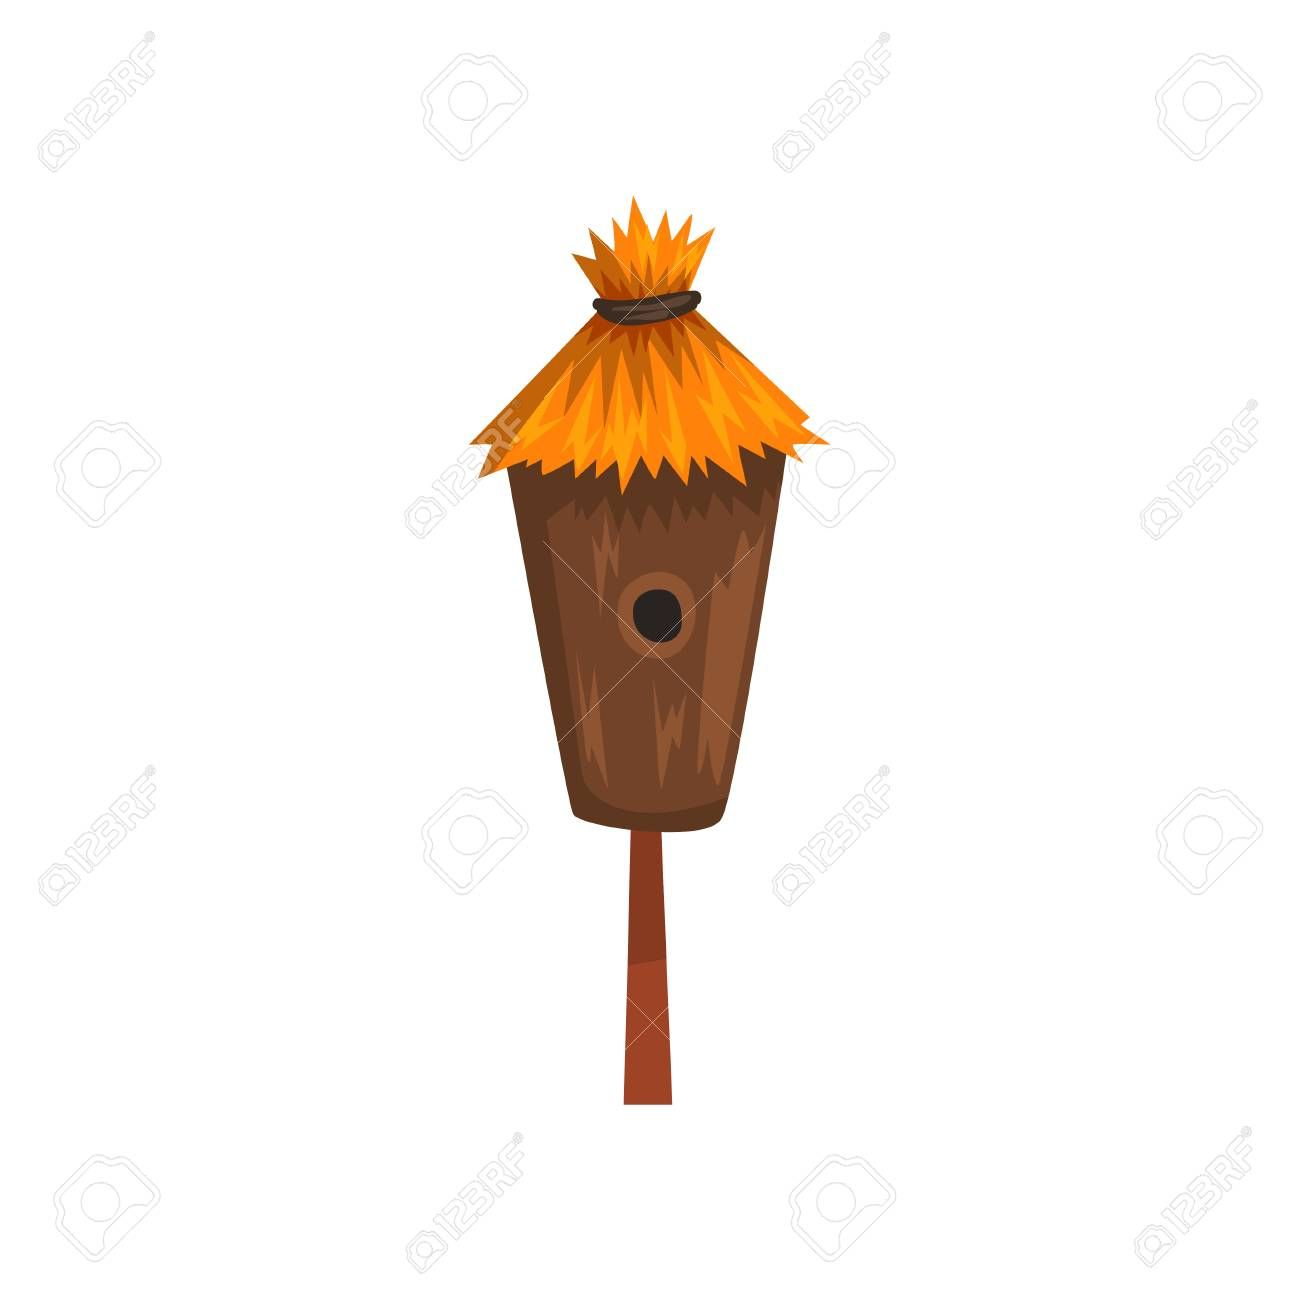 Bird House With A Thatched Roof Nesting Box Cartoon Vector Illustration On A White Background Aff Roof Nesting Th Bird House Roofing Felt Nesting Box